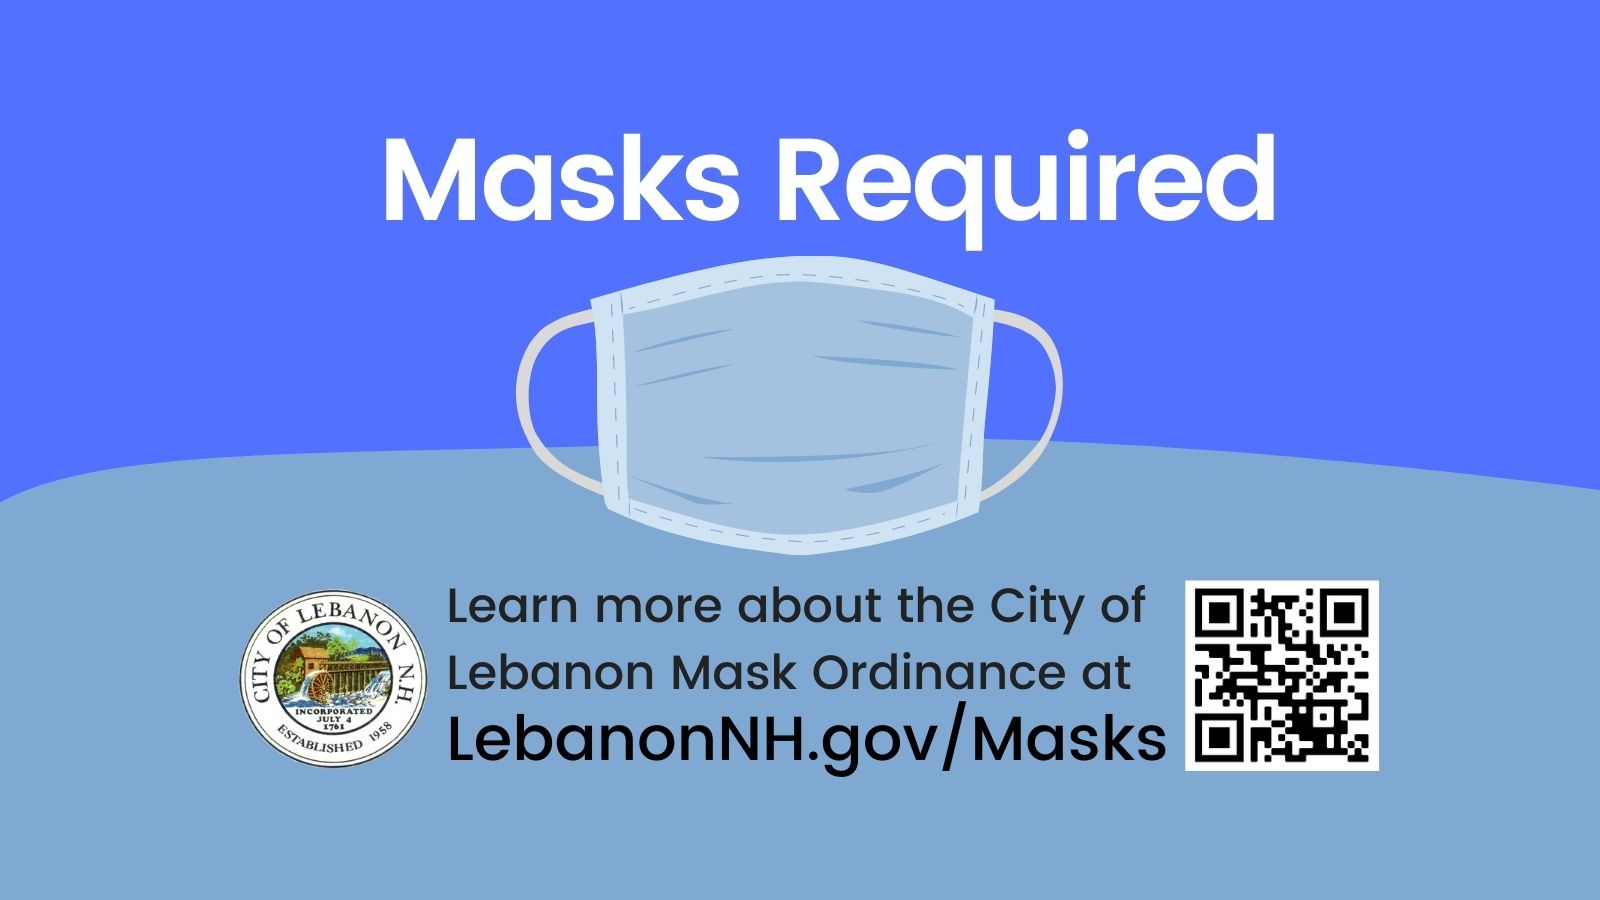 Masks Required newsflash with QR code pointing to LebanonNH.gov/Masks